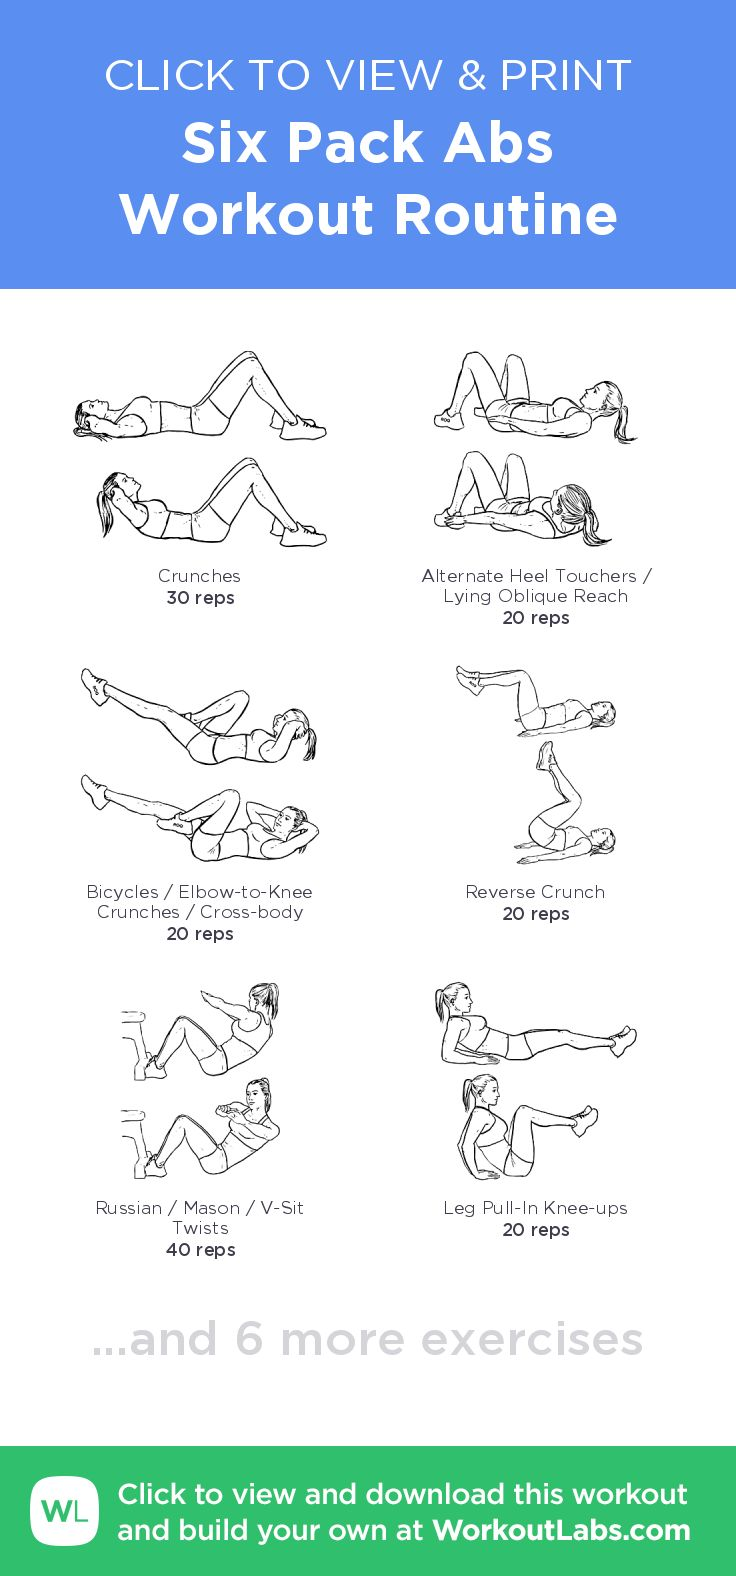 Six Pack Abs Workout Routine – click to view and print this illustrated exercise plan created with #WorkoutLabsFit